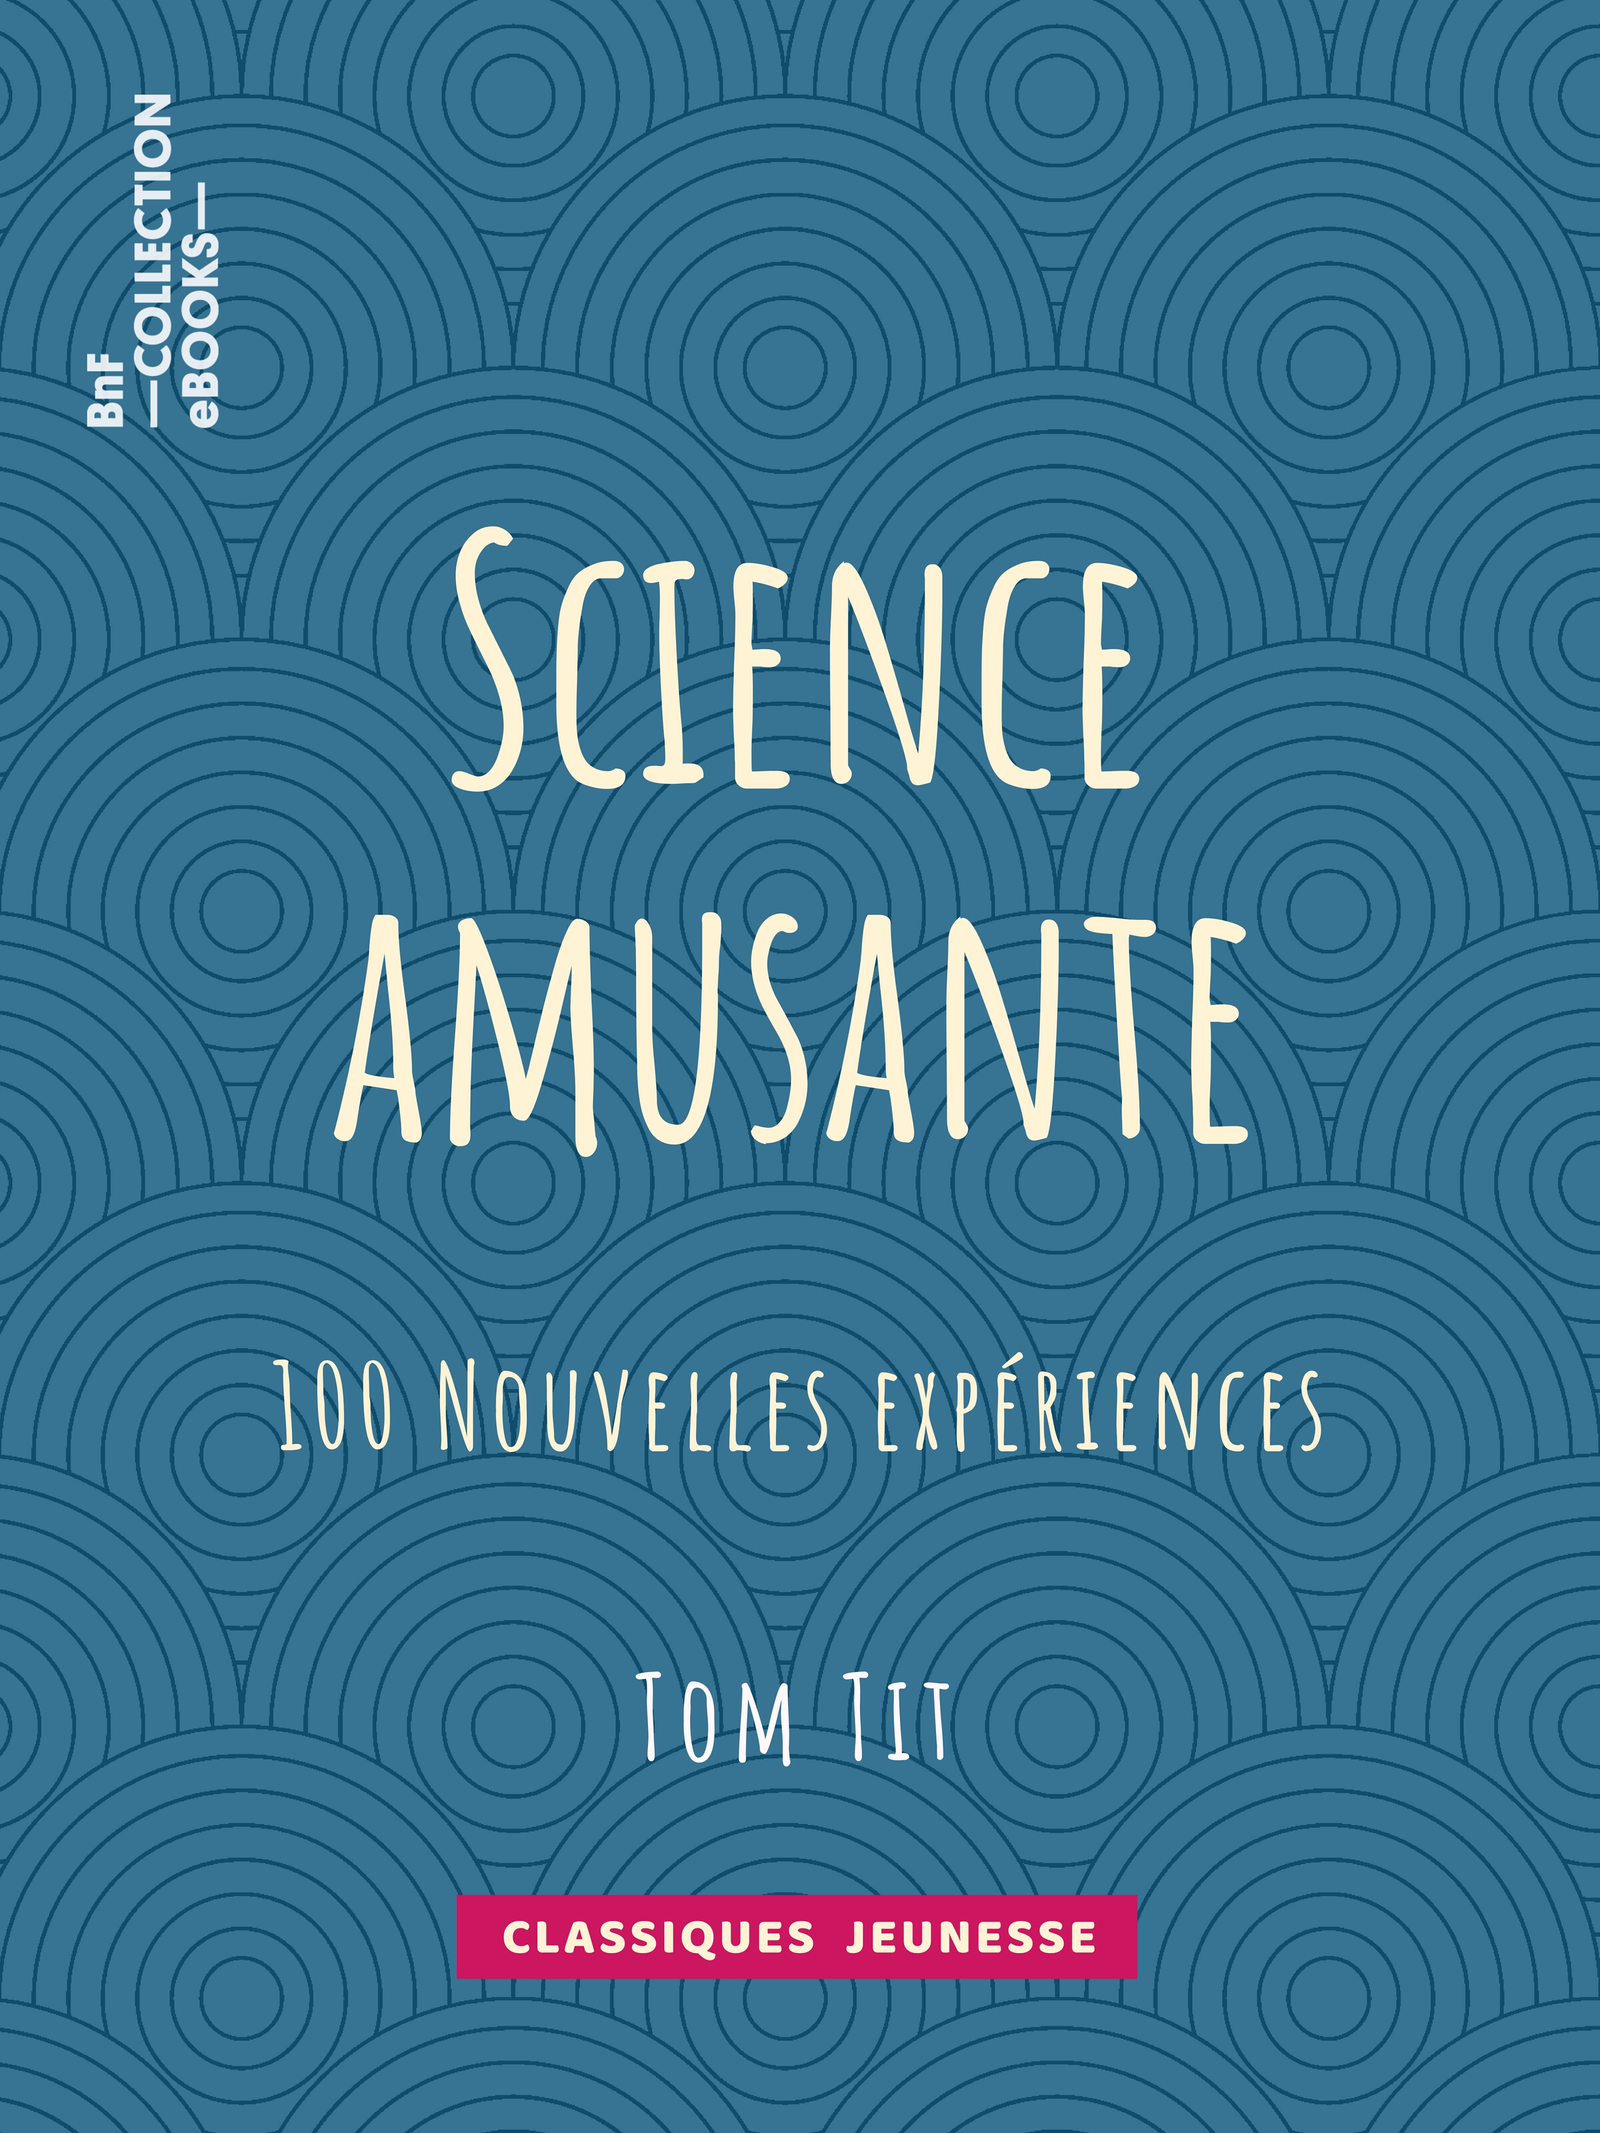 Science amusante